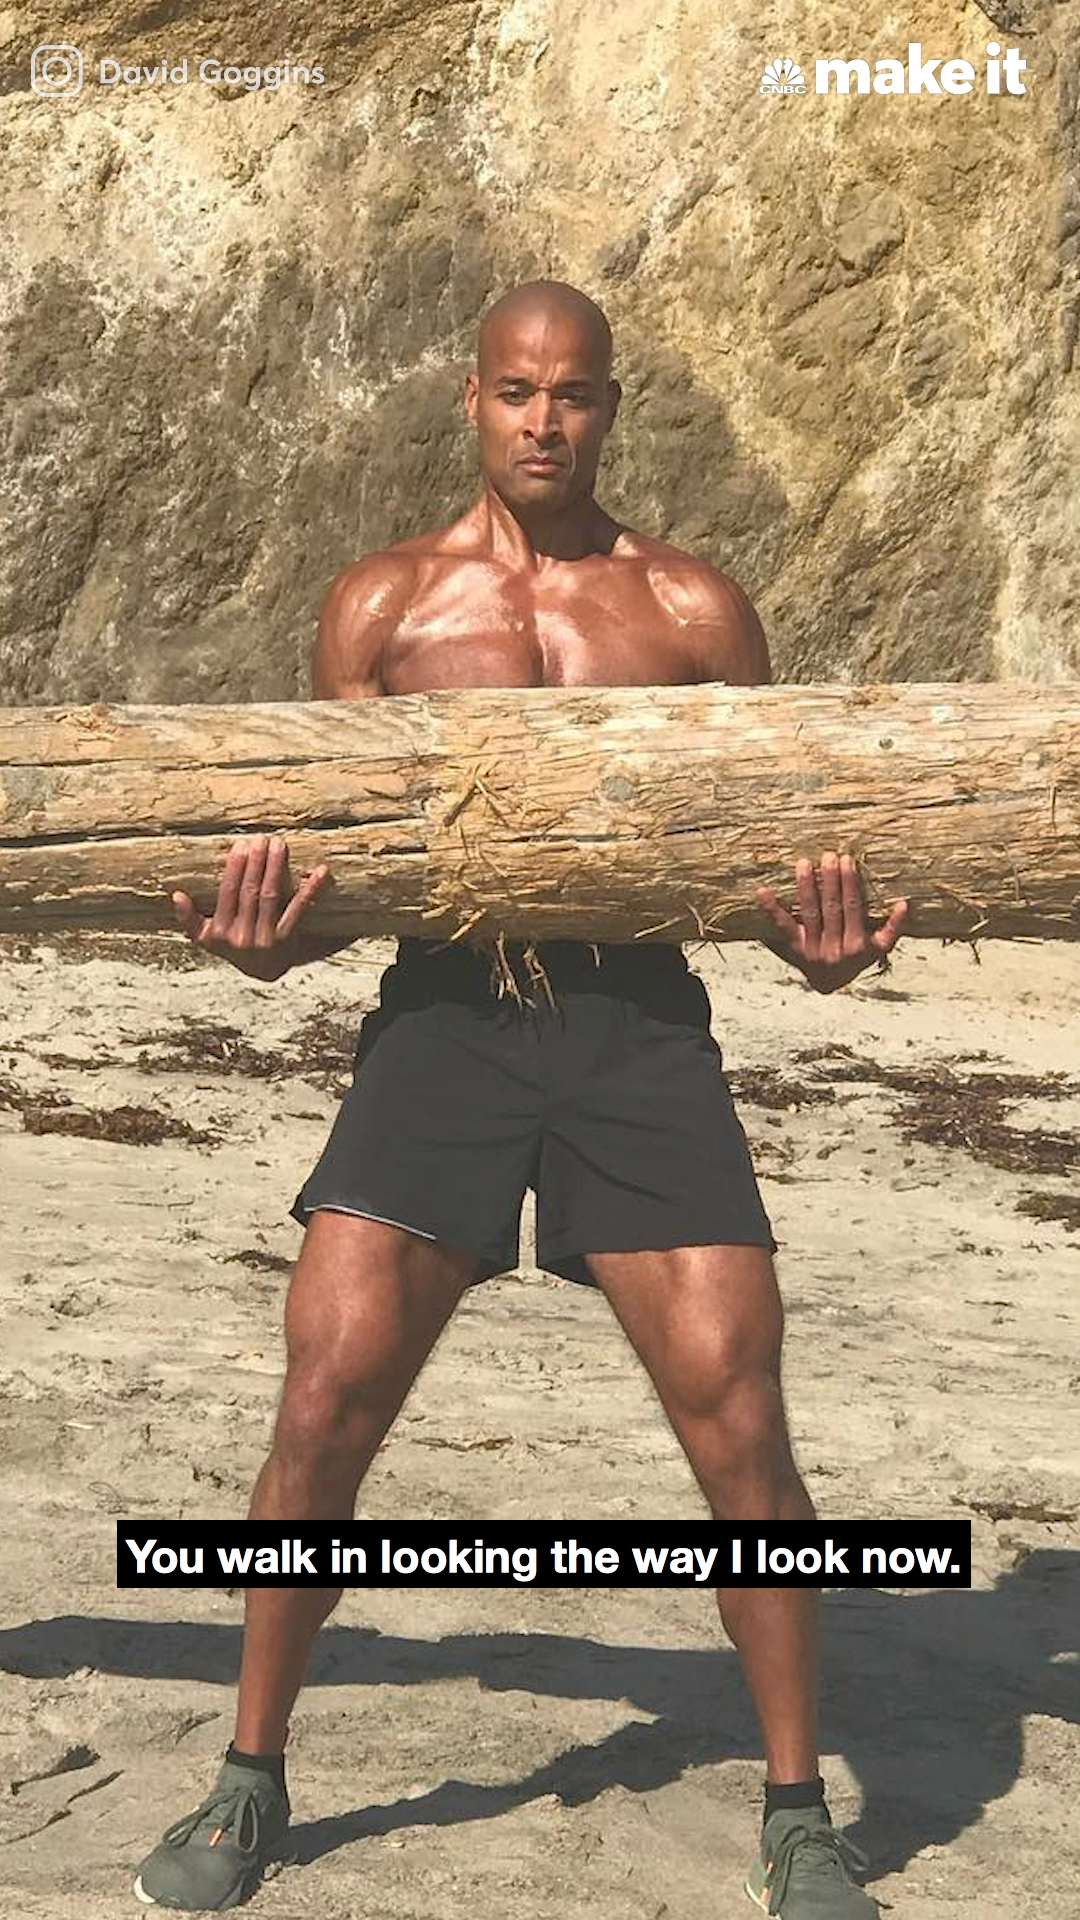 How David Goggins Went From An Exterminator Living Paycheck To Paycheck To A Navy Seal Video Video Becoming A Navy Seal Health Fitness Inspiration Military Workout